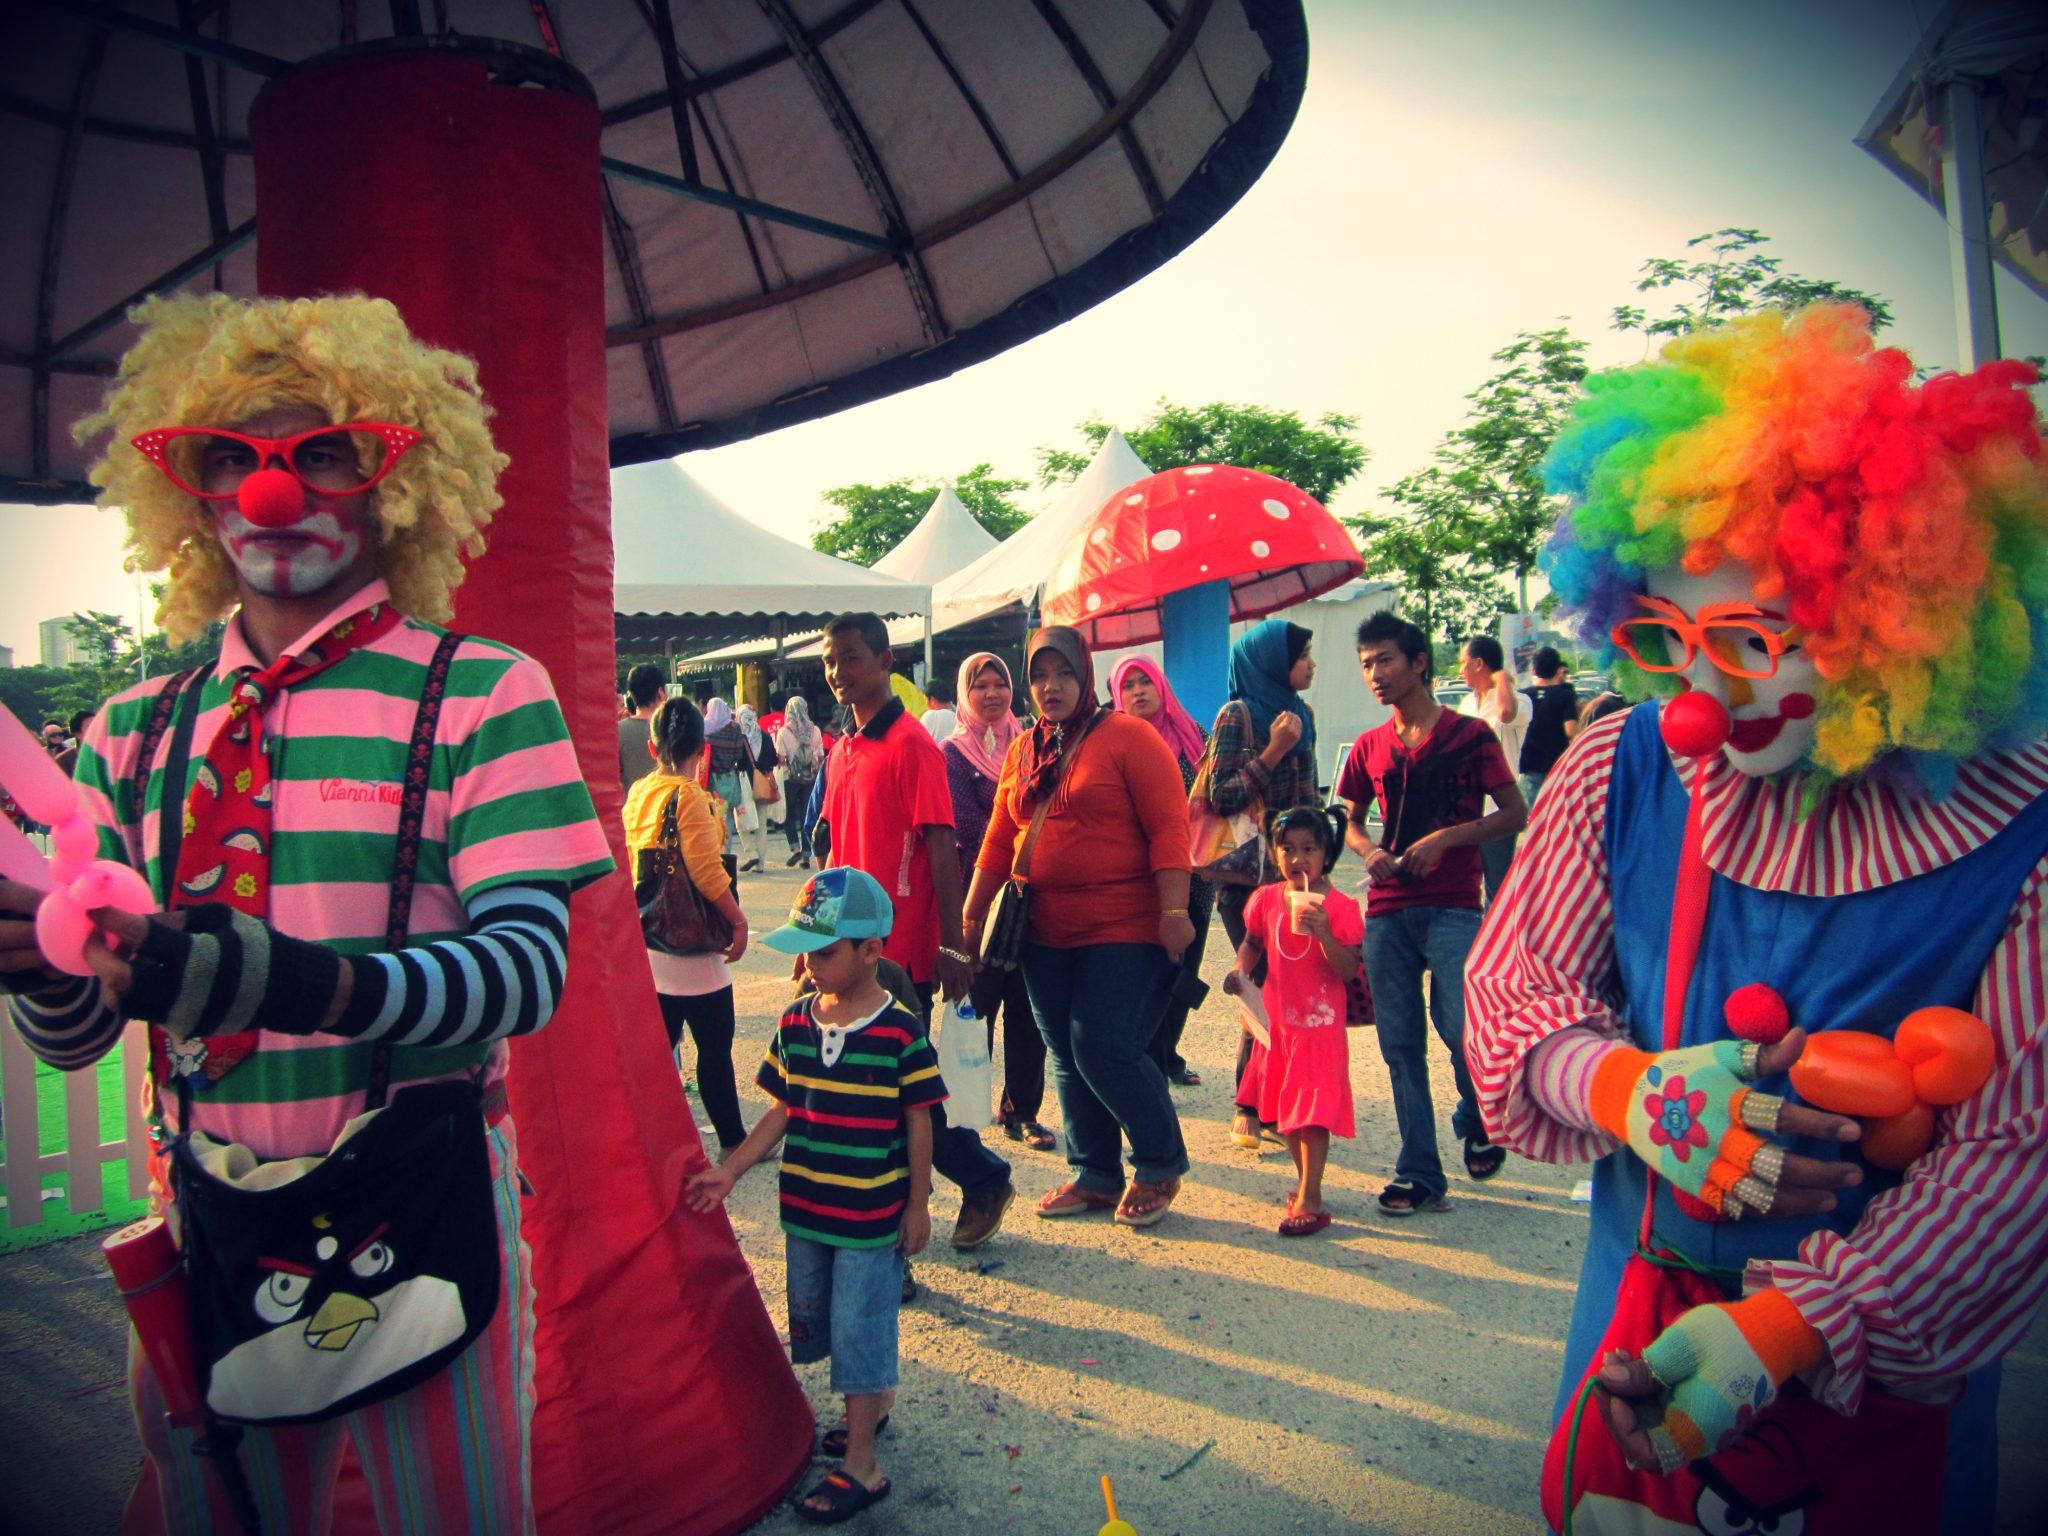 I love Clowns! :)